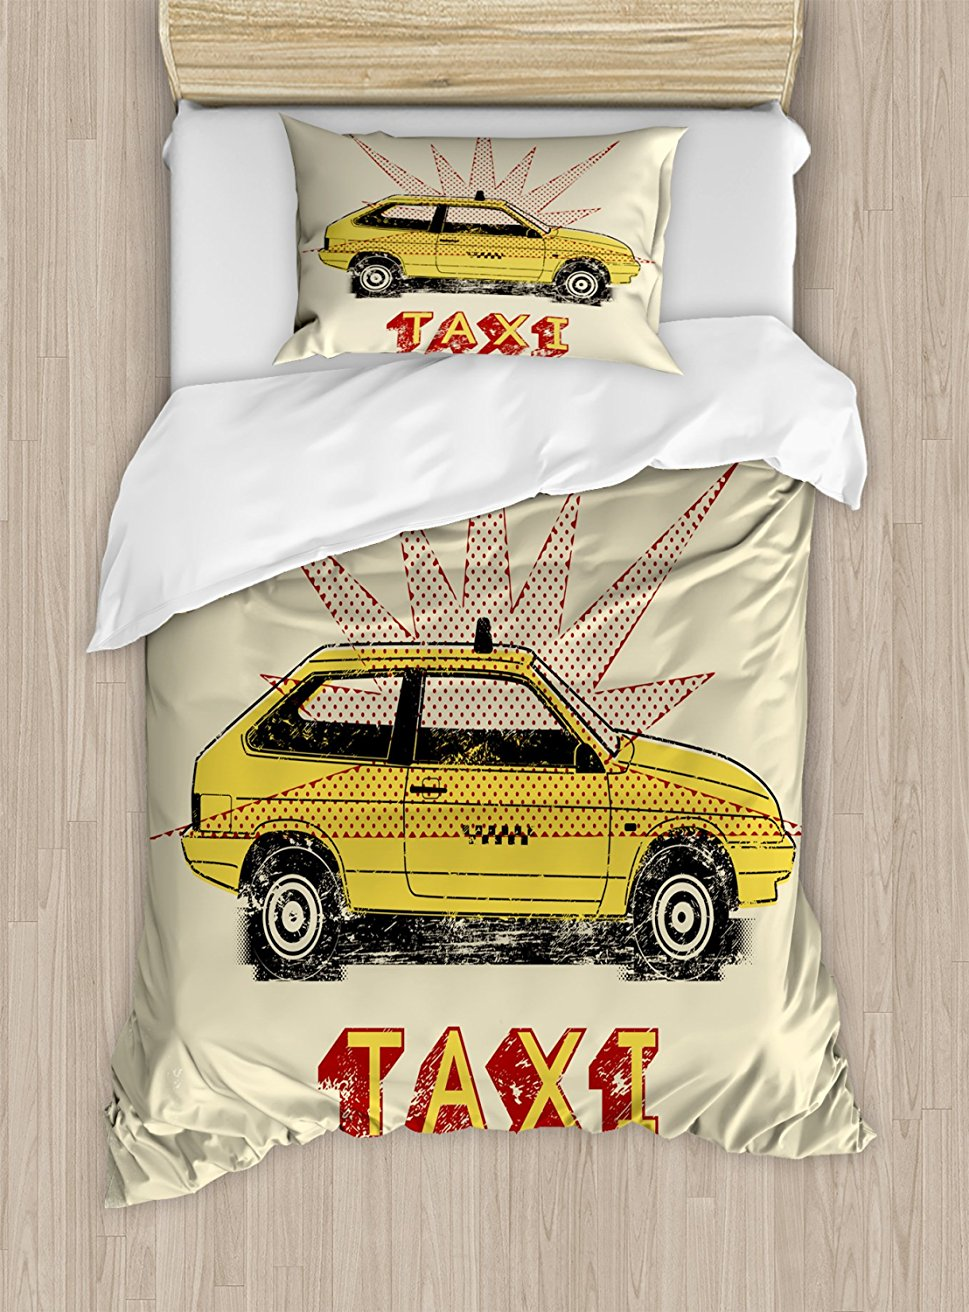 Retro Duvet Cover Set , Pop Art Style Old Fashioned Taxi Cab with Grunge Effects Vintage Car Graphic, 4 Piece Bedding Set